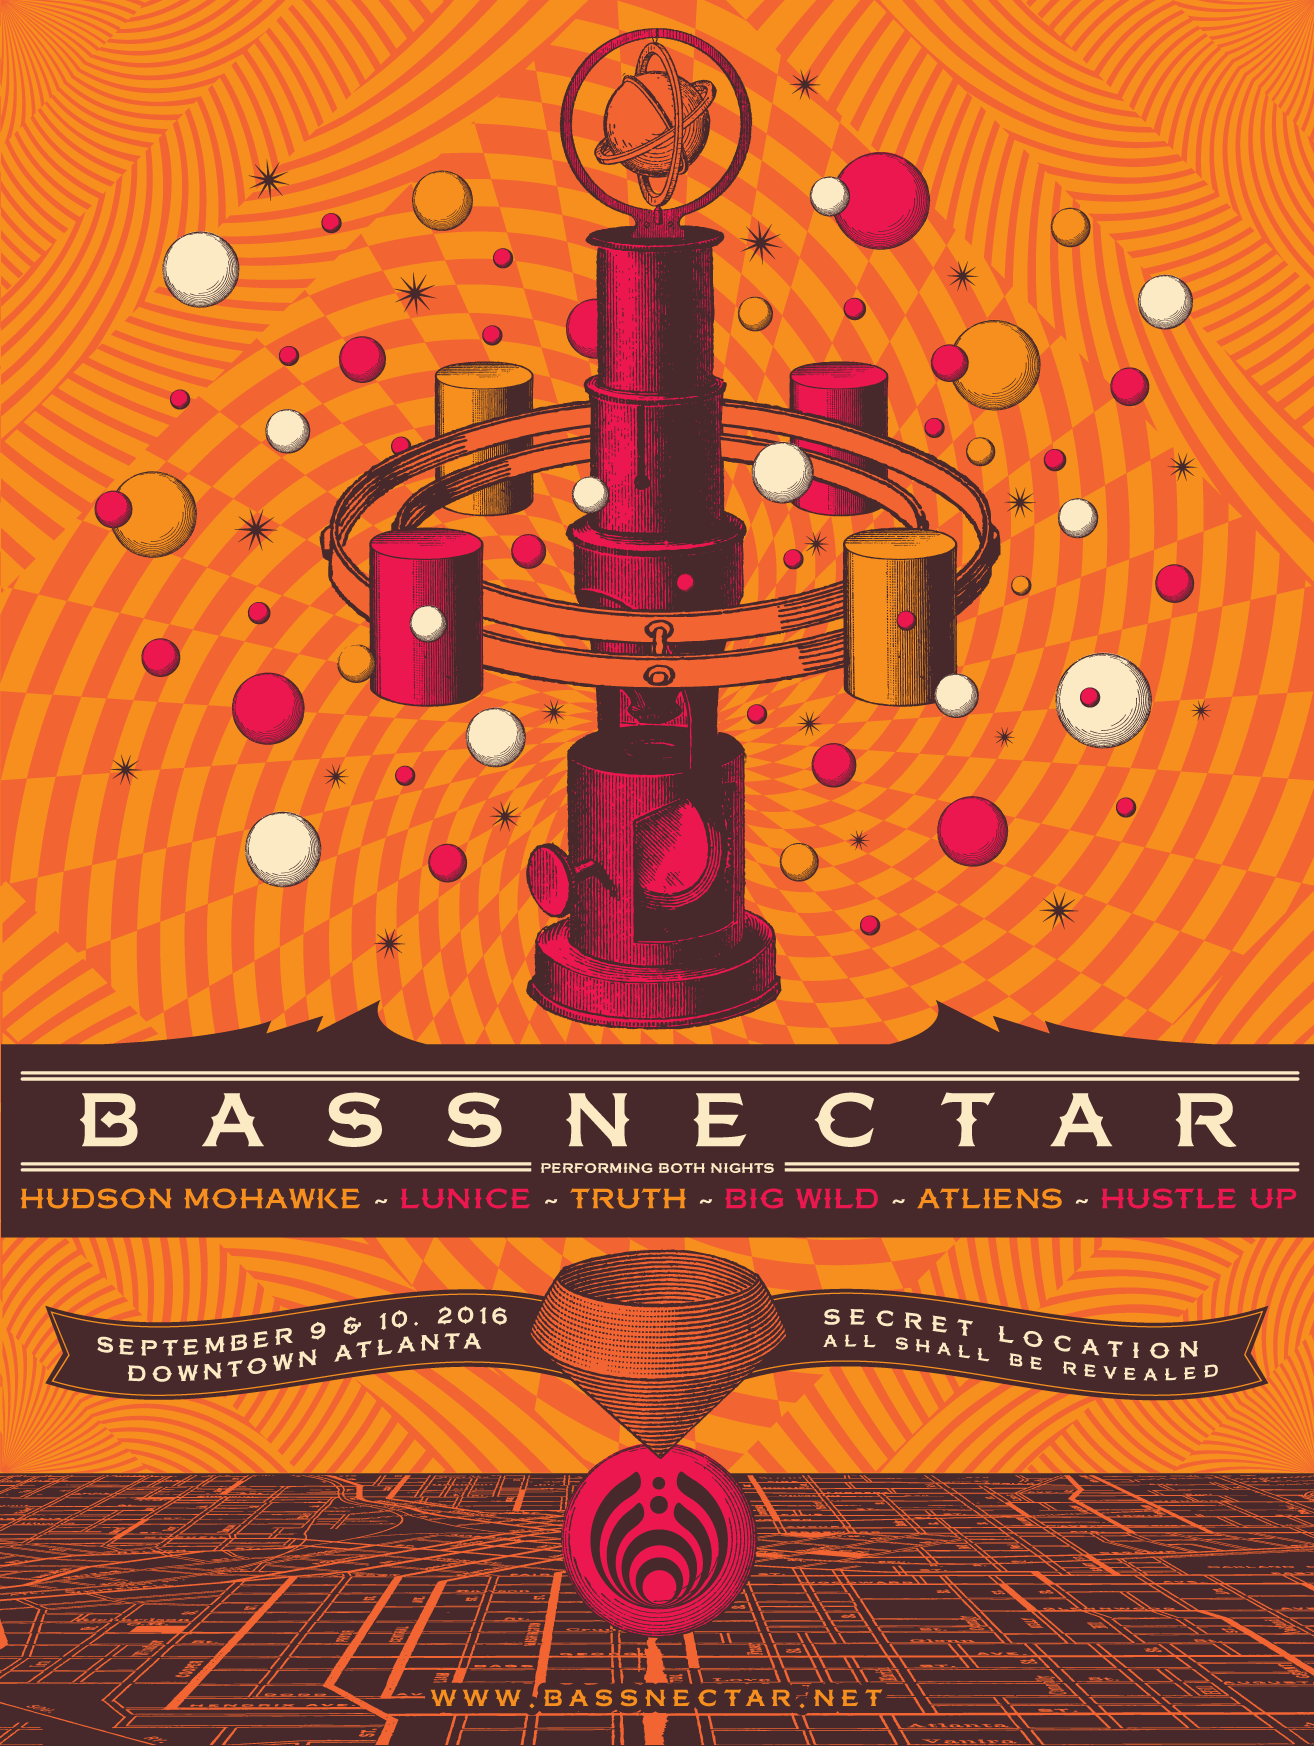 Bassnectar in Atlanta @ Secret Location